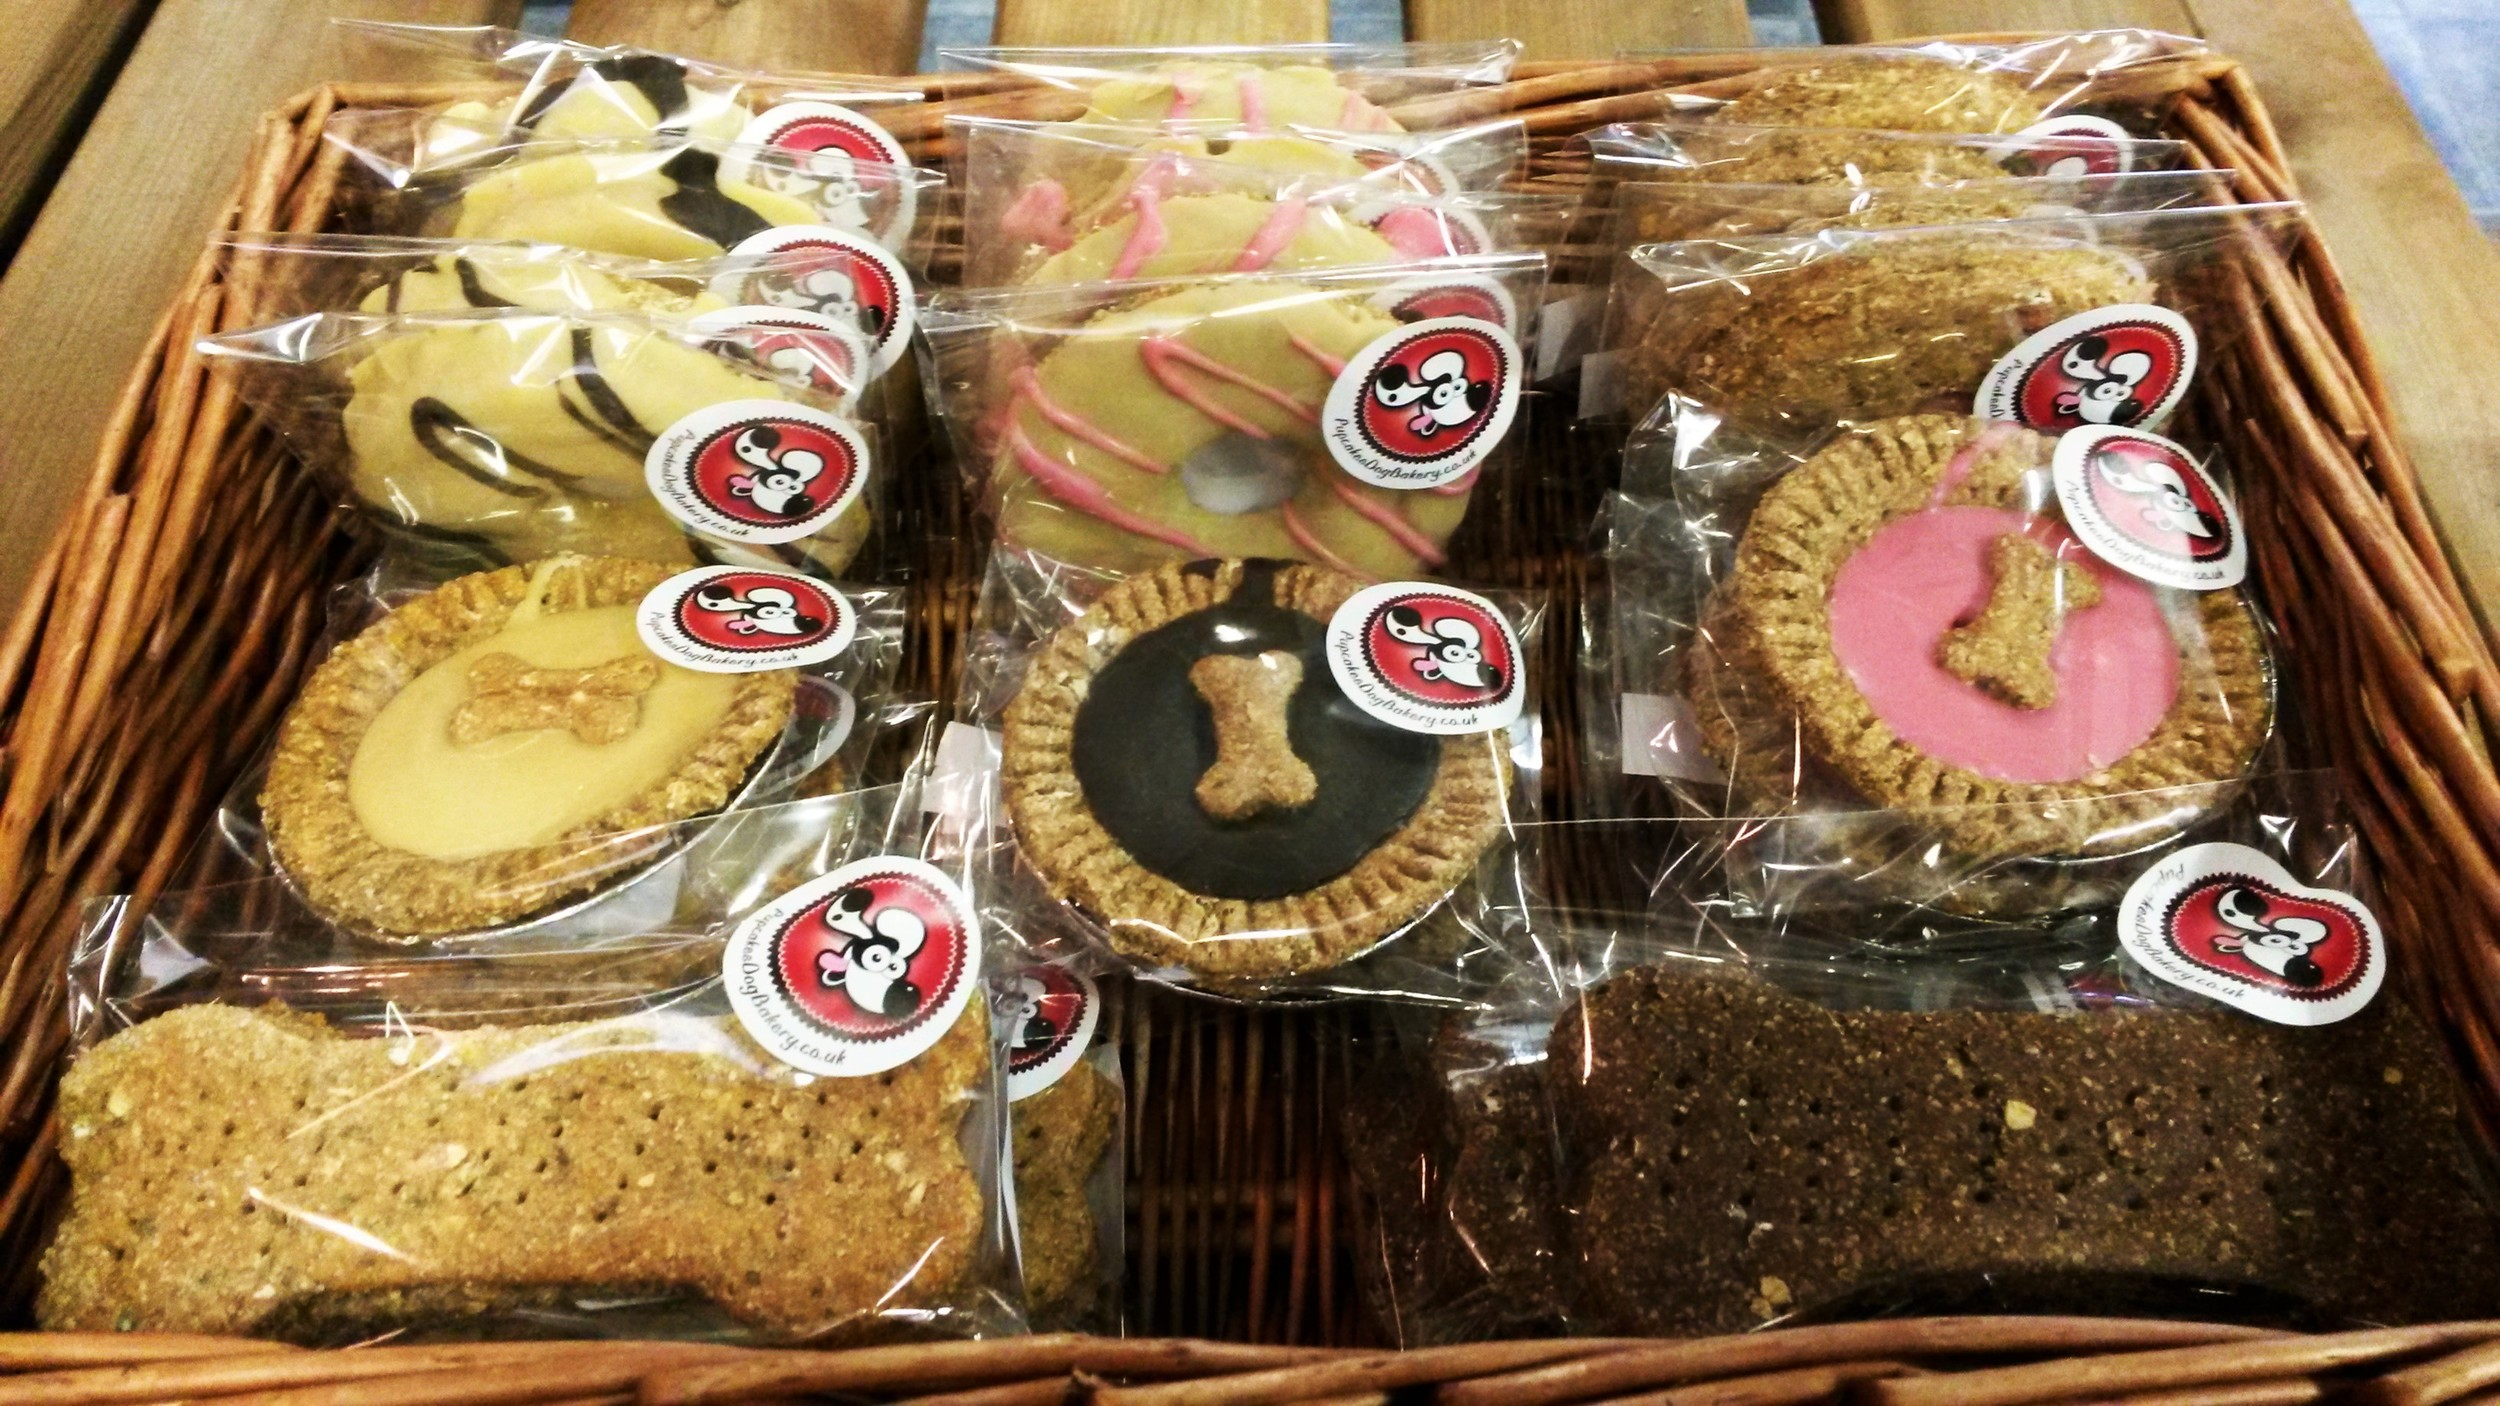 Hand made dog treats for sale at Ginger&Browns pet shop in Northwich, Chester near Chester, Winsford, Frodsham. Shop in store or buy online.